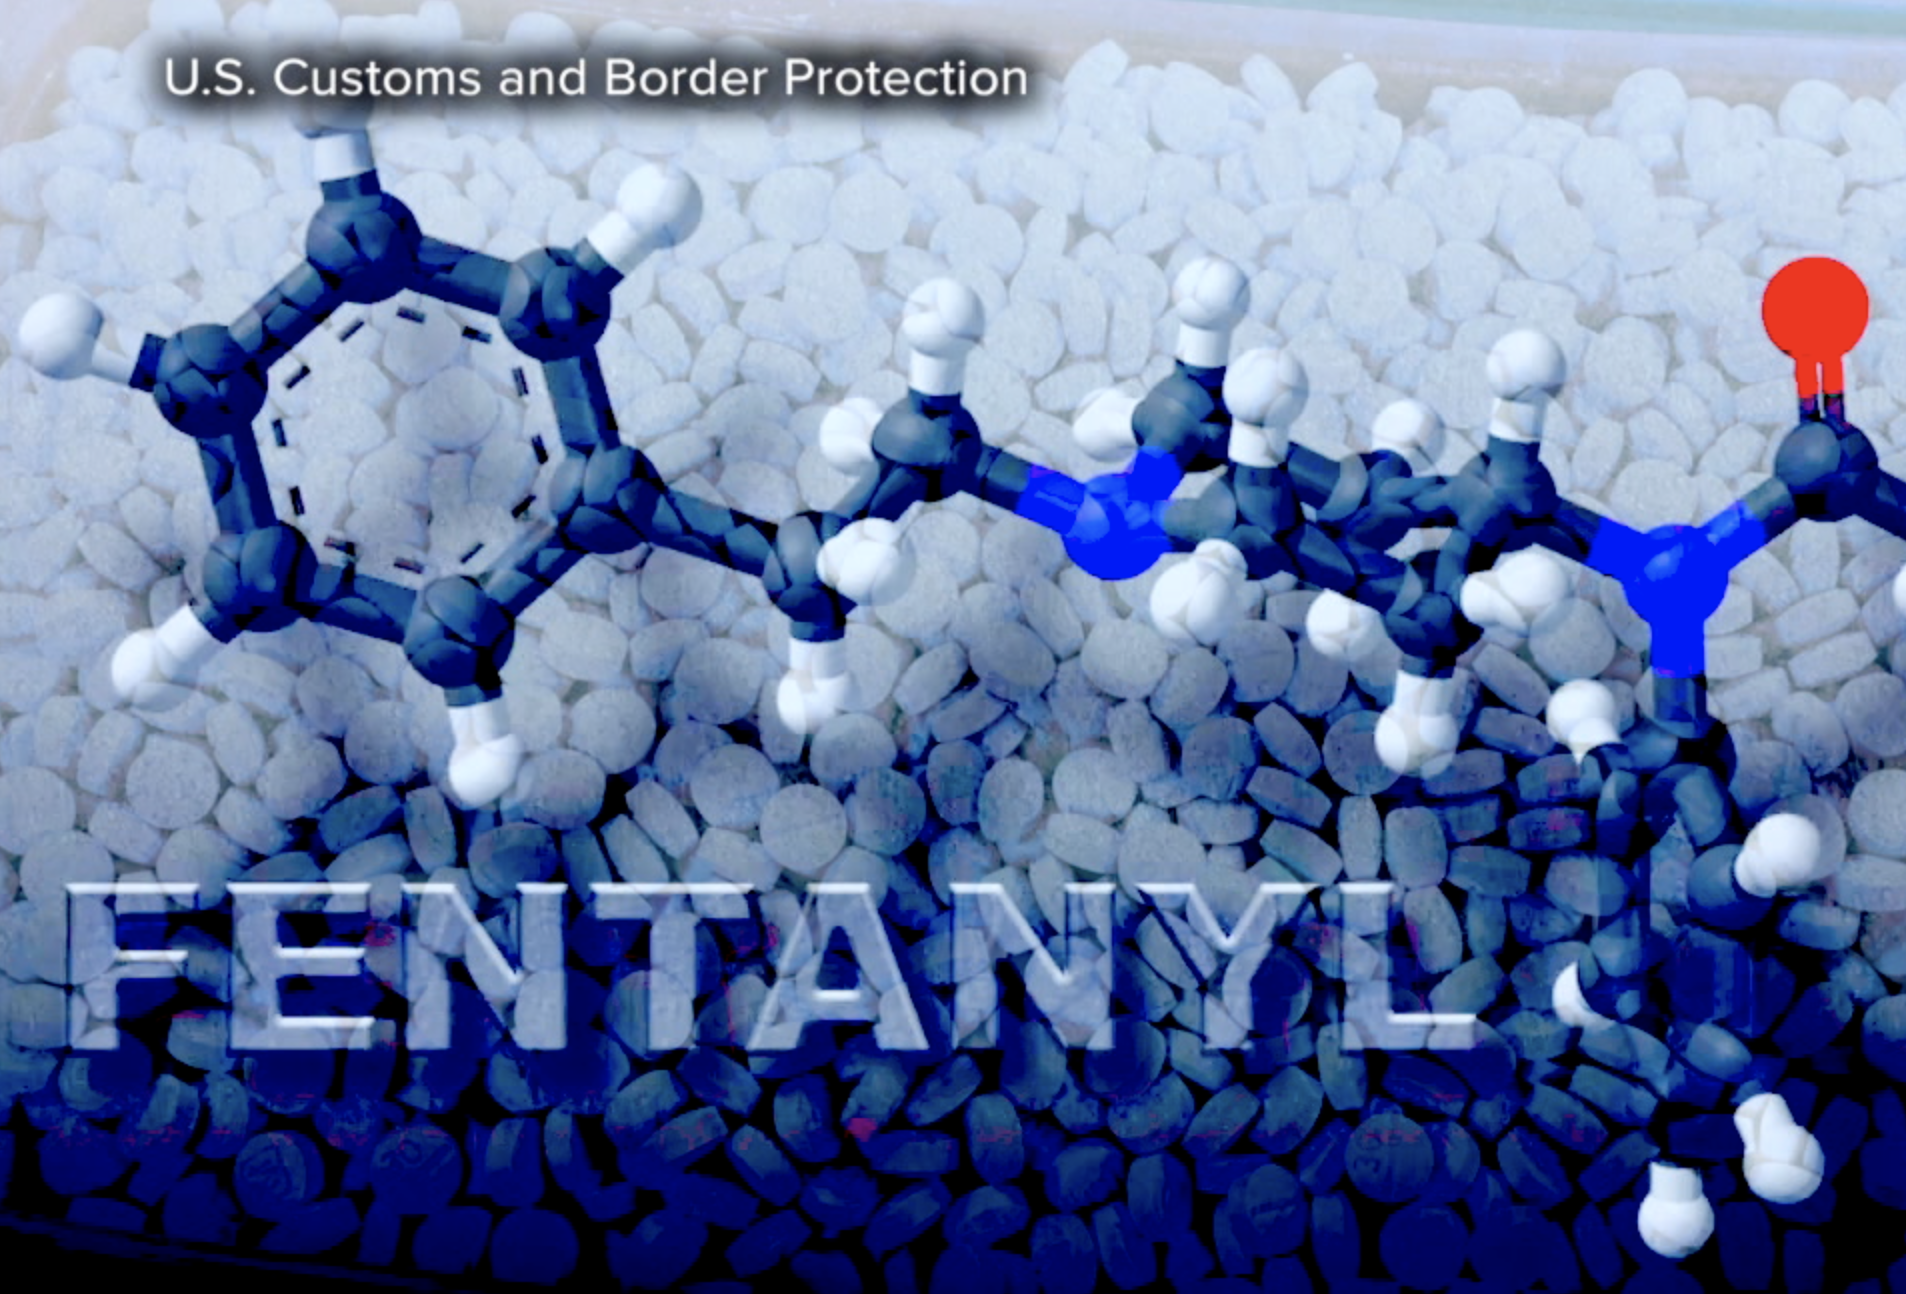 Fentanyl: Breaking a cycle of addiction, Part III